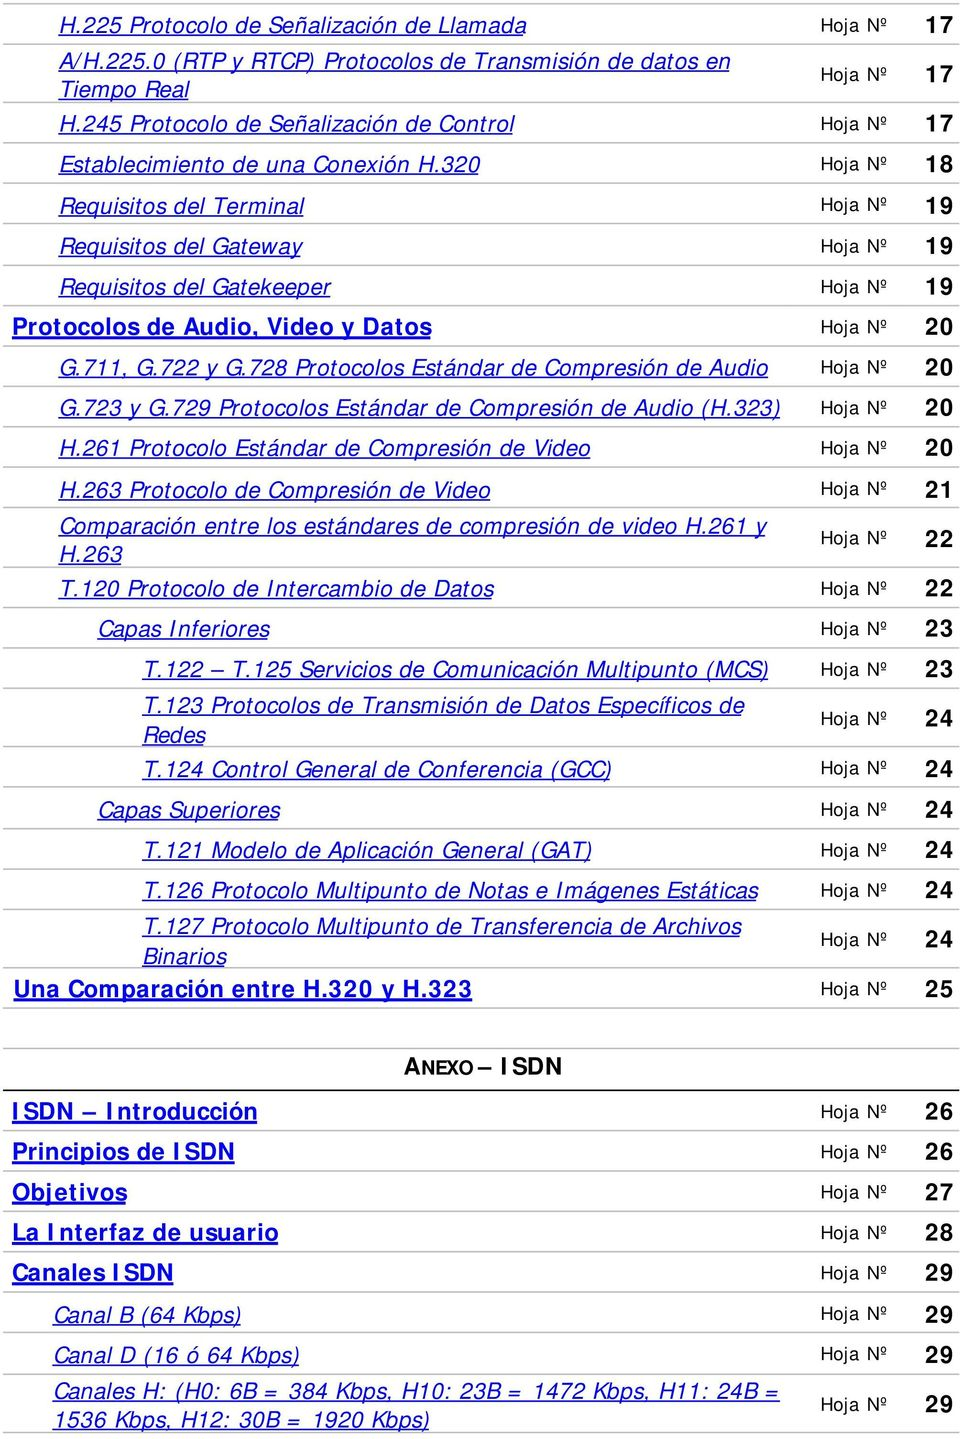 320 Hoja Nº 18 Requisitos del Terminal Hoja Nº 19 Requisitos del Gateway Hoja Nº 19 Requisitos del Gatekeeper Hoja Nº 19 Protocolos de Audio, Video y Datos Hoja Nº 20 G.711, G.722 y G.